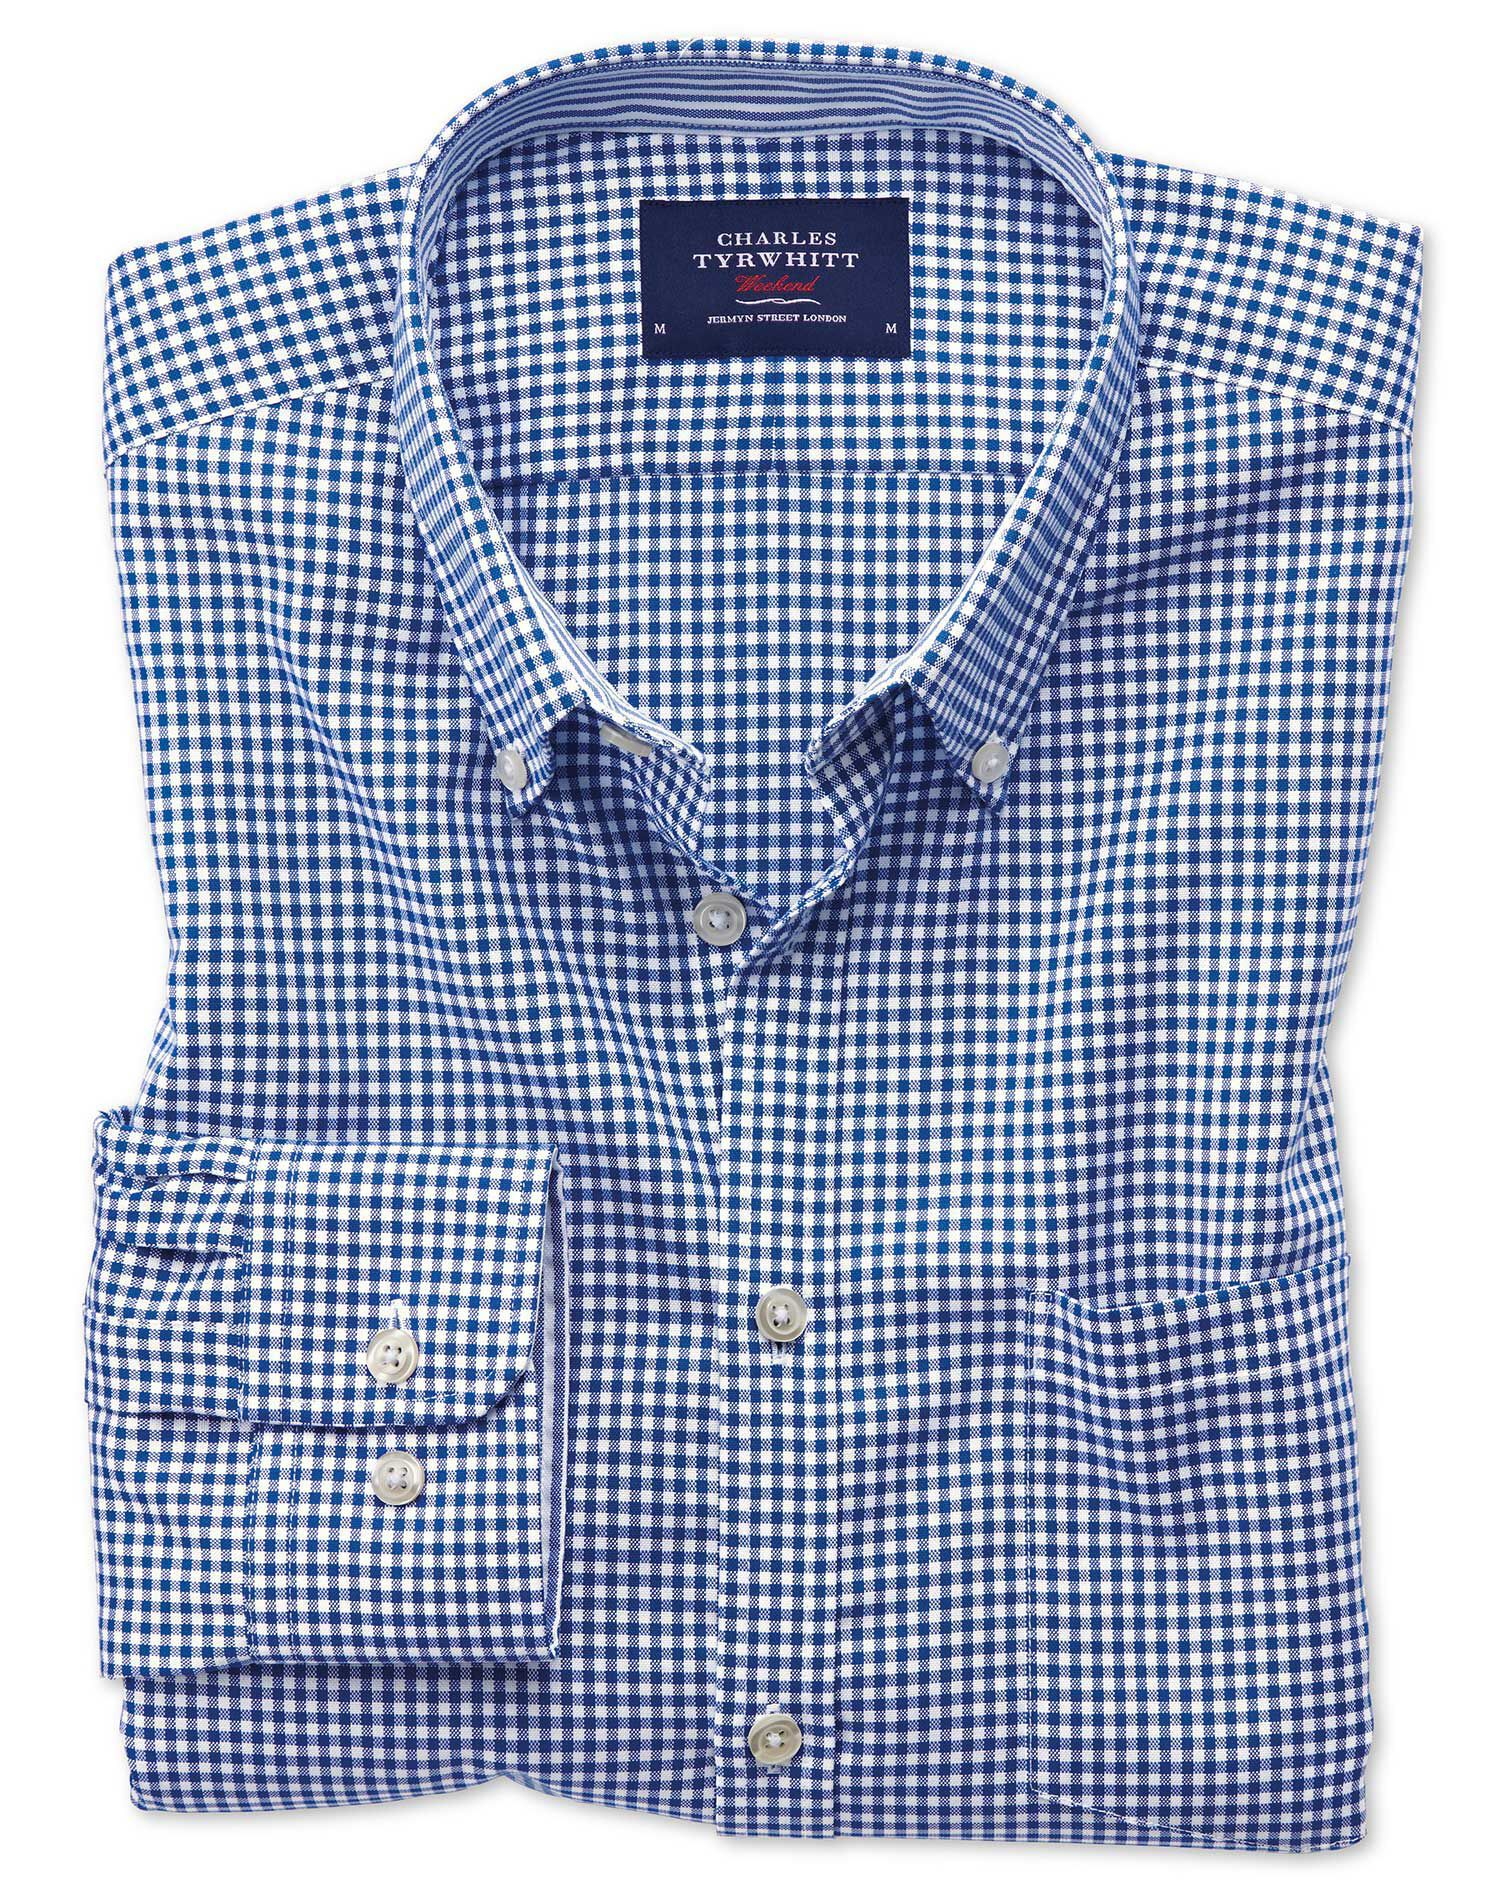 Extra Slim Fit Button-Down Non-Iron Oxford Gingham Royal Blue Cotton Shirt Single Cuff Size XXL by C